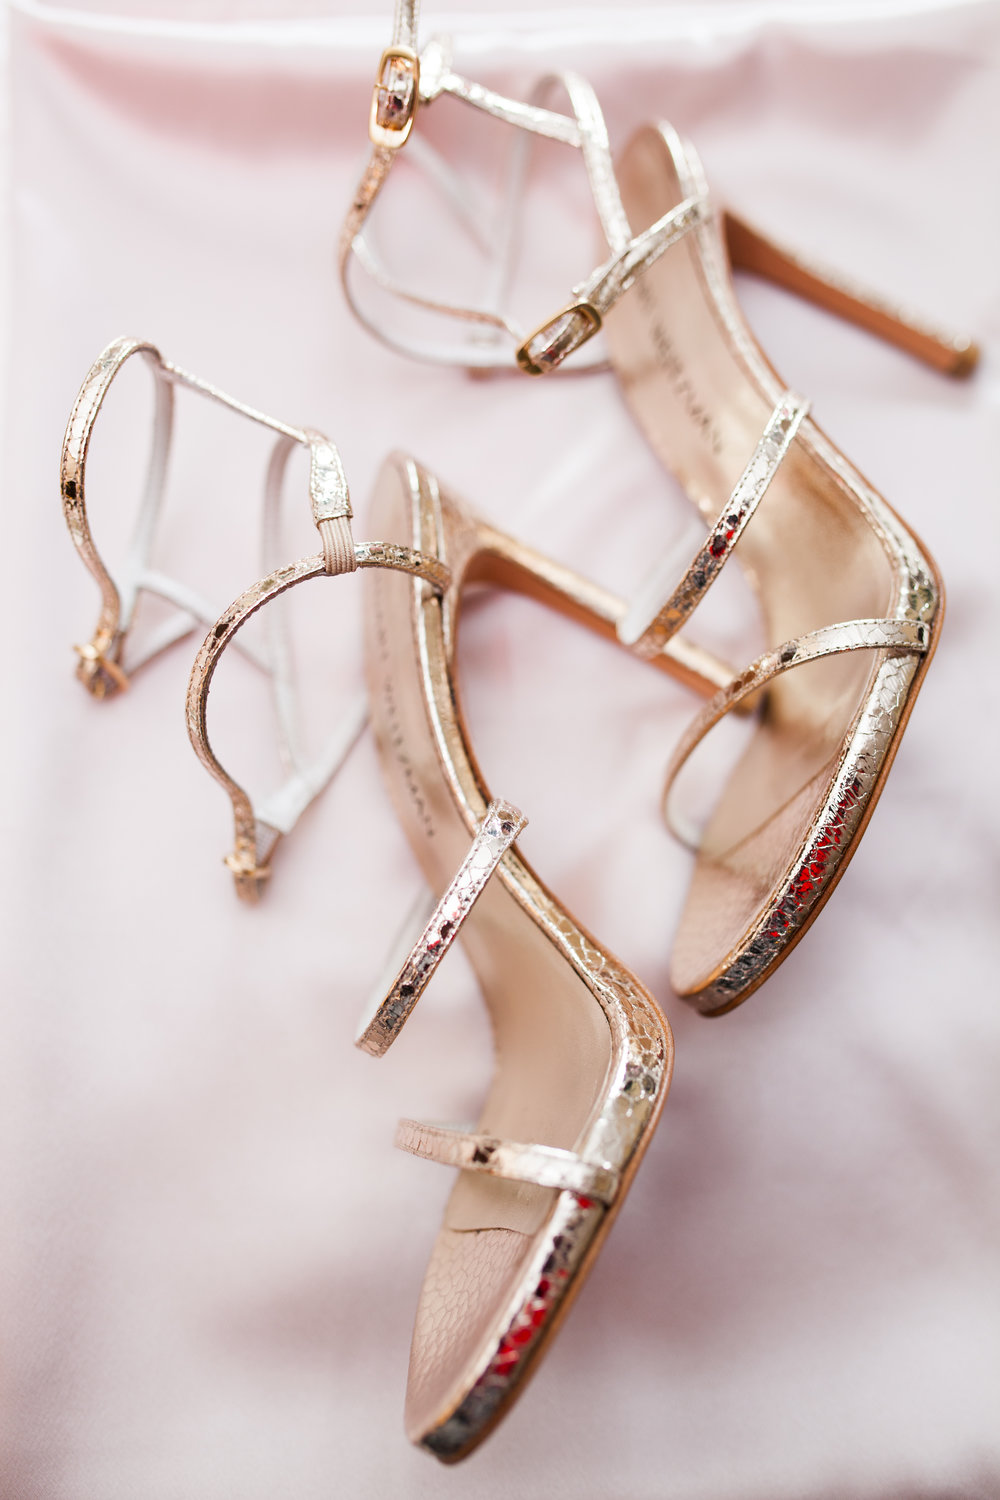 Stuart Weitzman Shoes Toronto Wedding Photographer Gold and Blush Pink Eritrean Wedding Photographer Toronto Harari Ethiopian